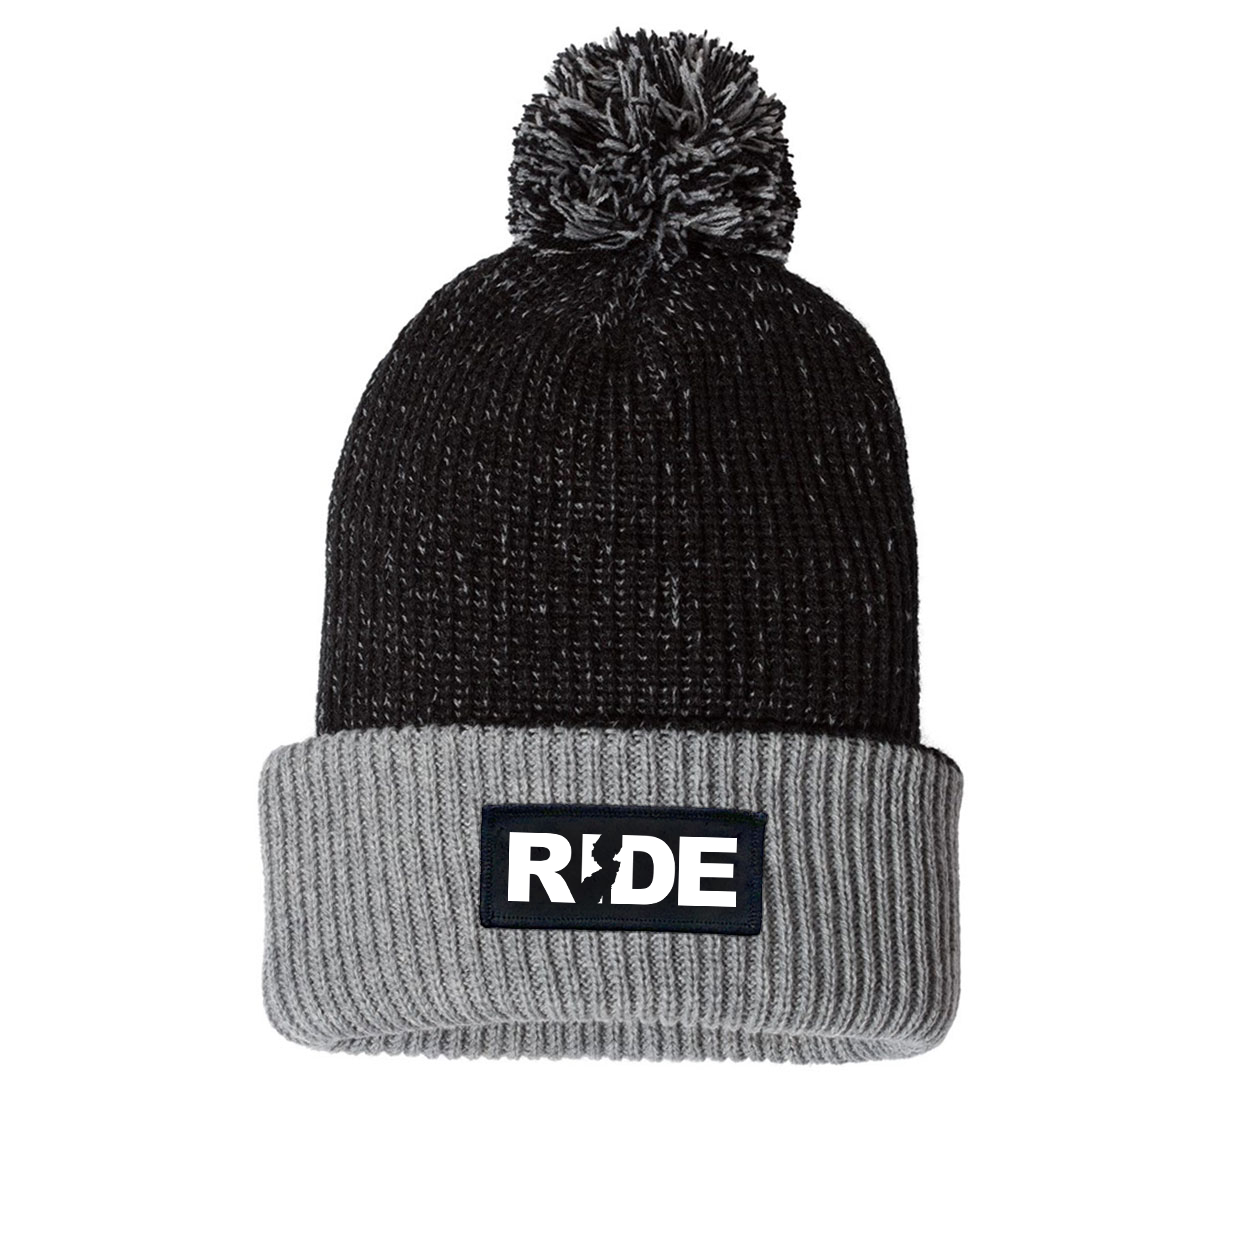 Ride New Jersey Night Out Woven Patch Roll Up Pom Knit Beanie Black/Gray (White Logo)